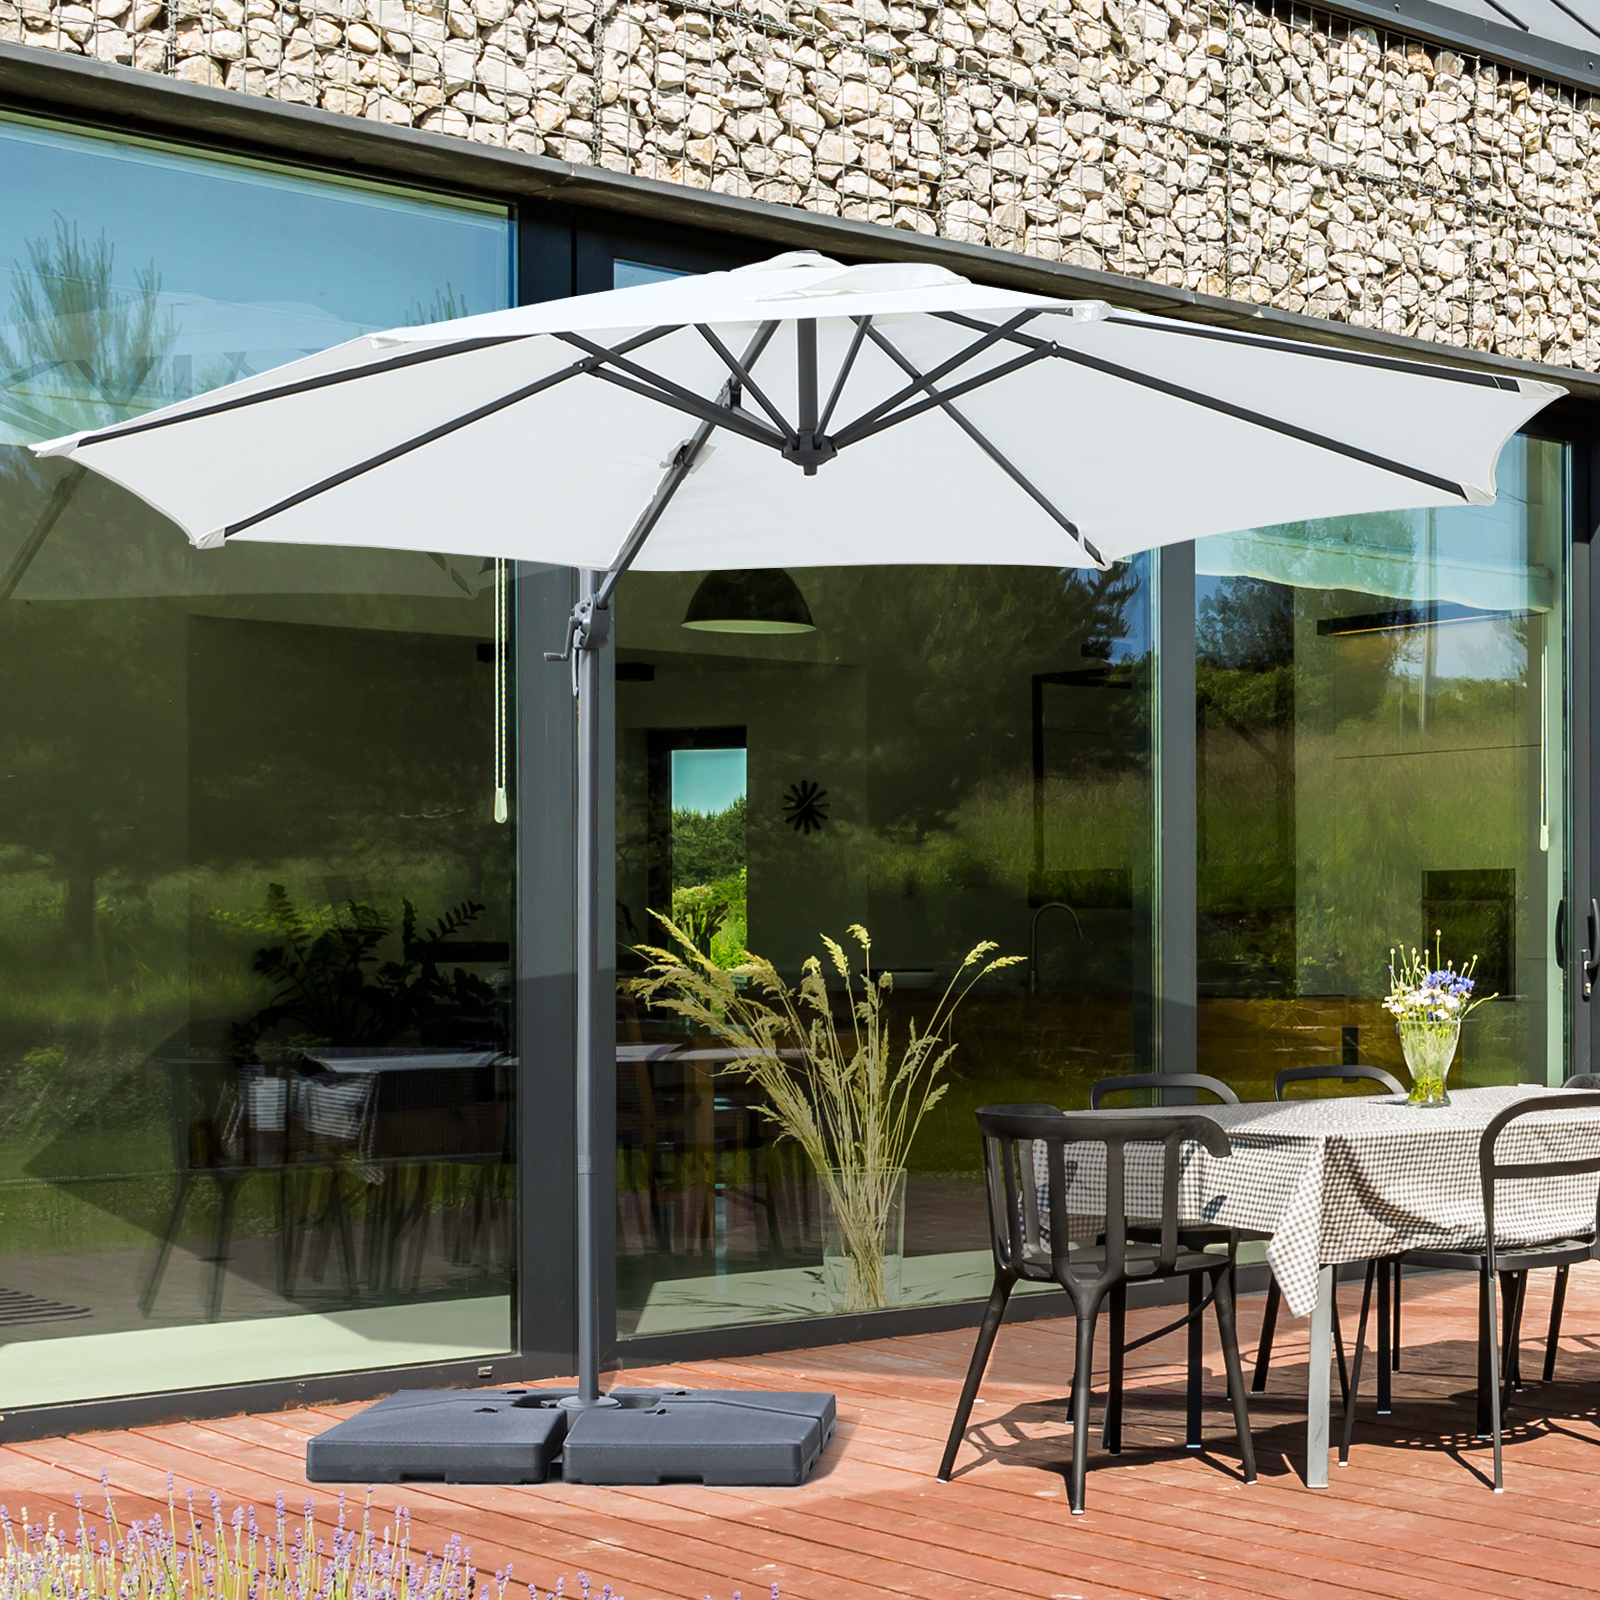 Details about Outsunny 9.5\u0027 Cantilever Hanging Tilt Offset Patio Umbrella w/ Base Stand Cream & Outsunny 9.5\u0027 Cantilever Hanging Tilt Offset Patio Umbrella w/ Base ...